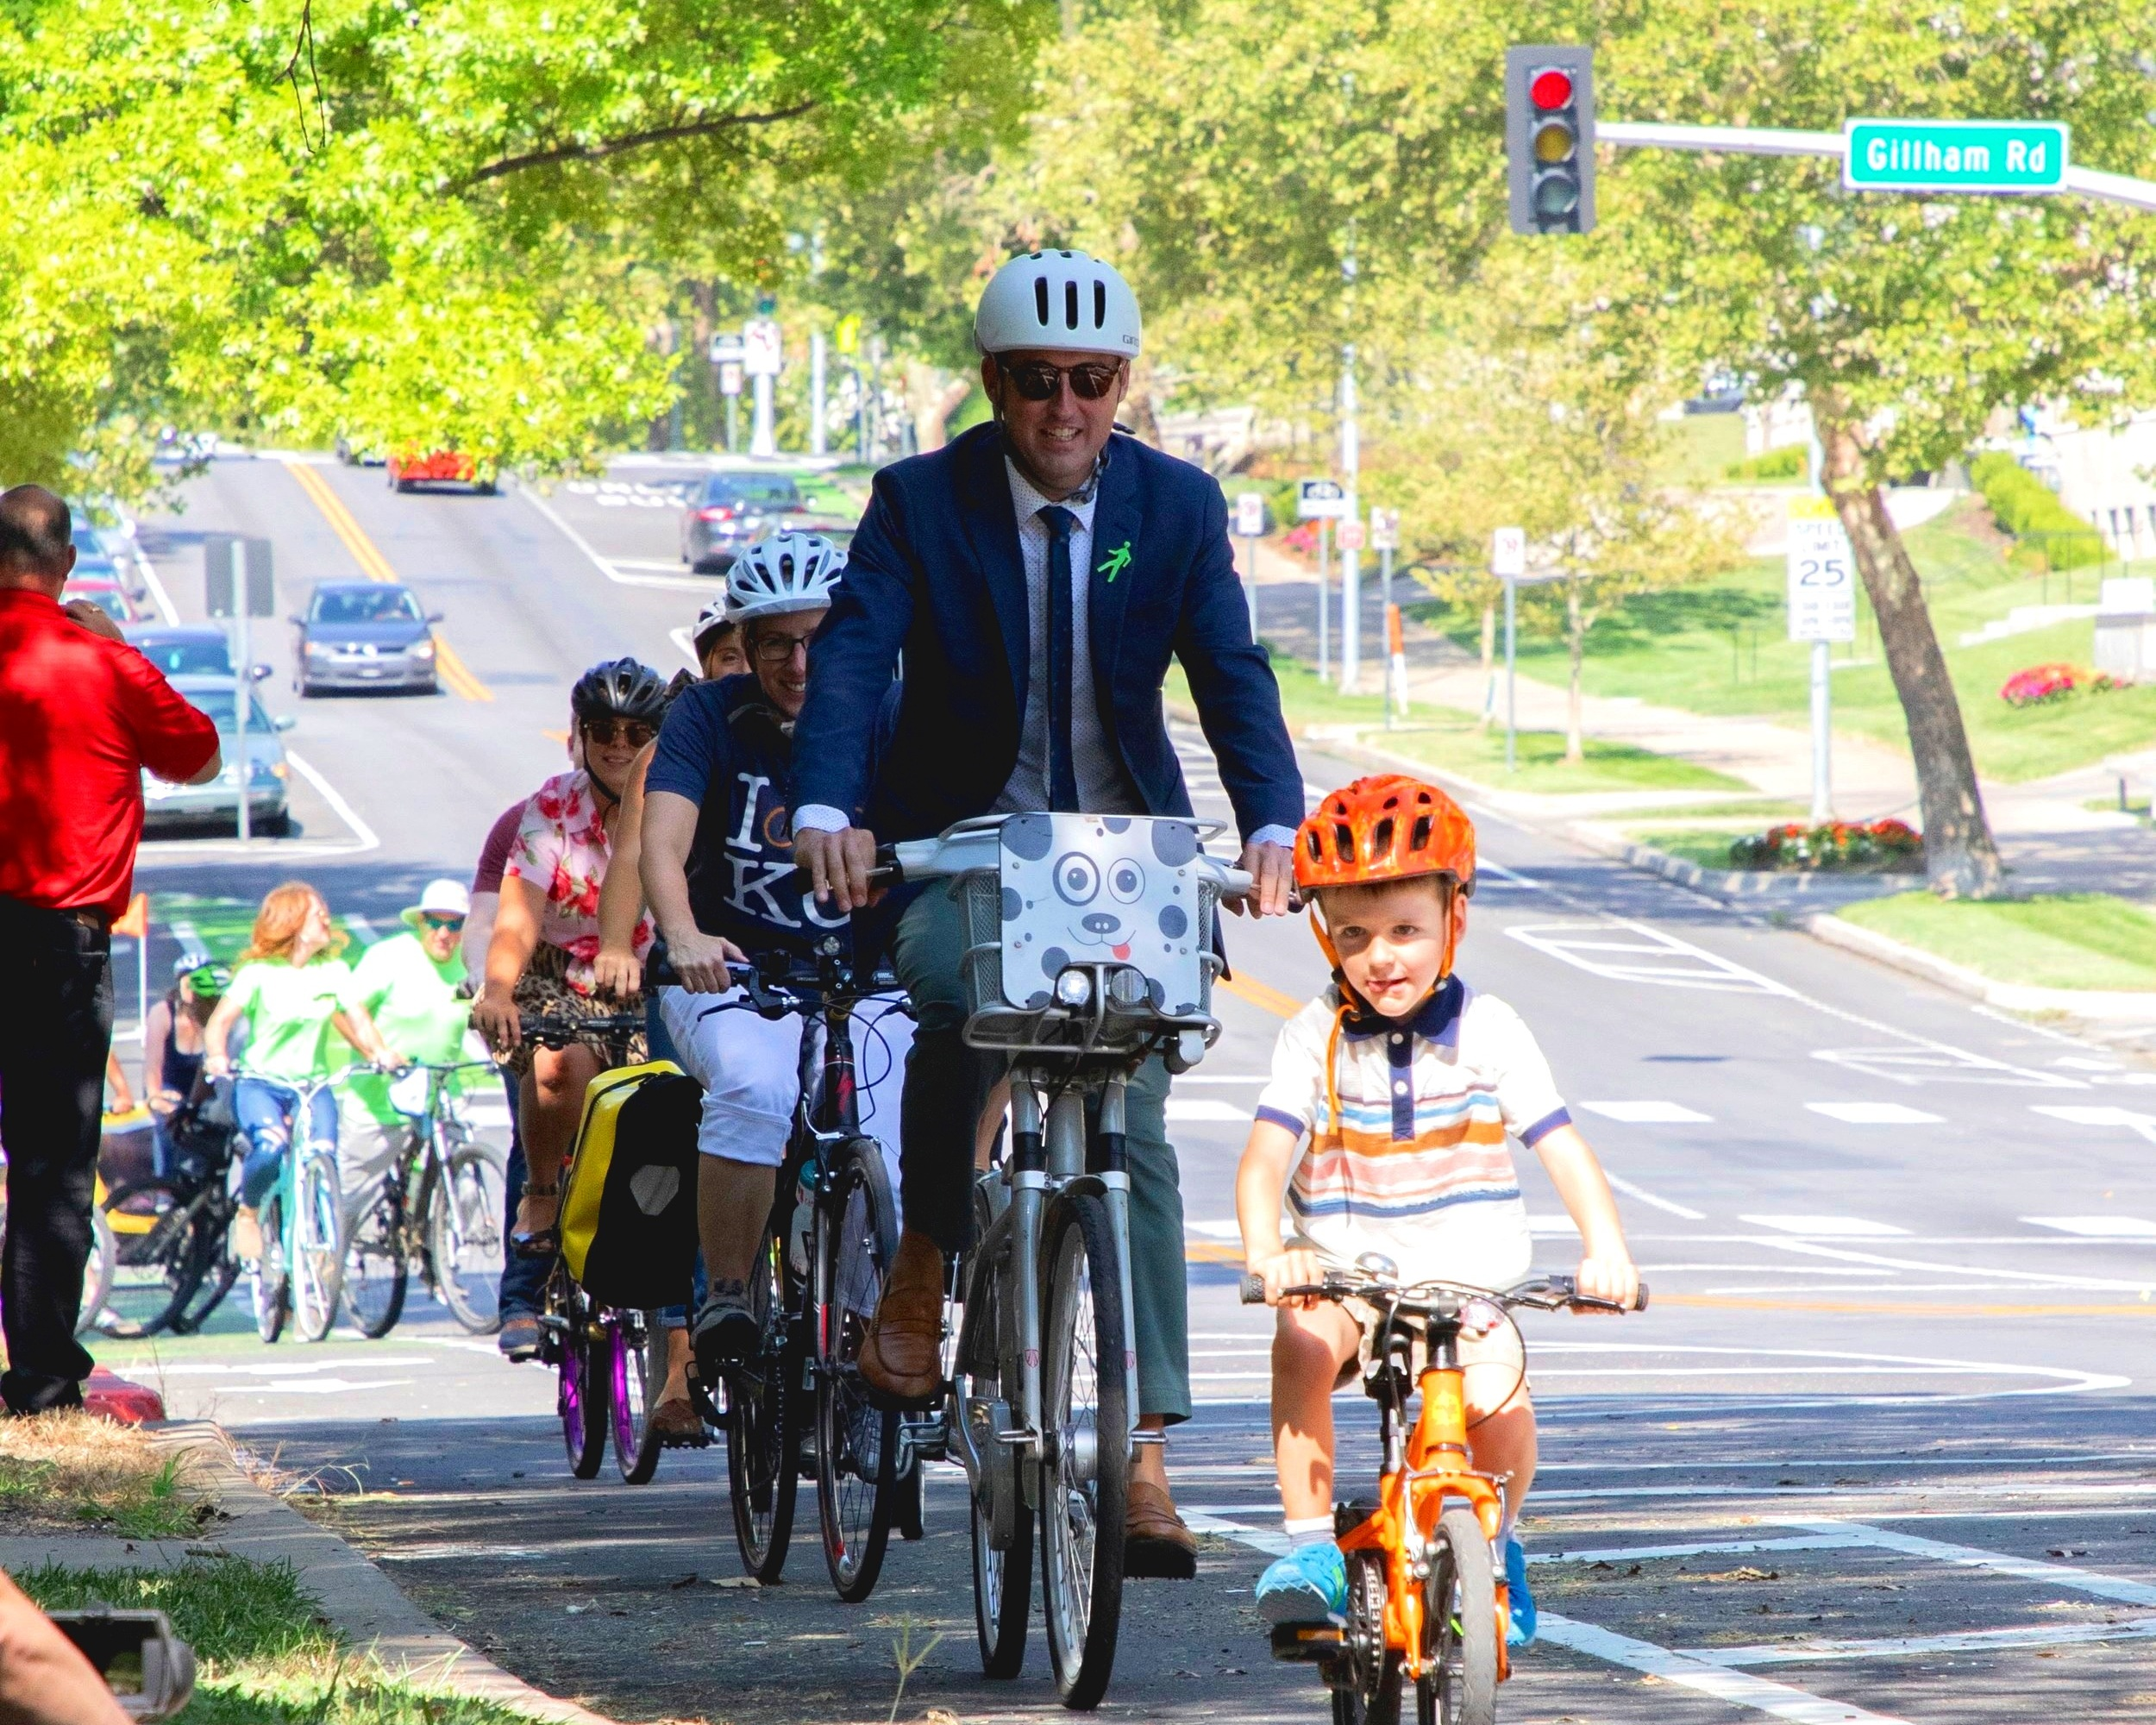 Plan for Our Future - I have already led an effort to create bicycle master plan and created a road map for upgrades to the city's walkability. Not only should we work to implement those plans, we should ensure that every planning effort the City undergoes establishes clear goals for sustainability.